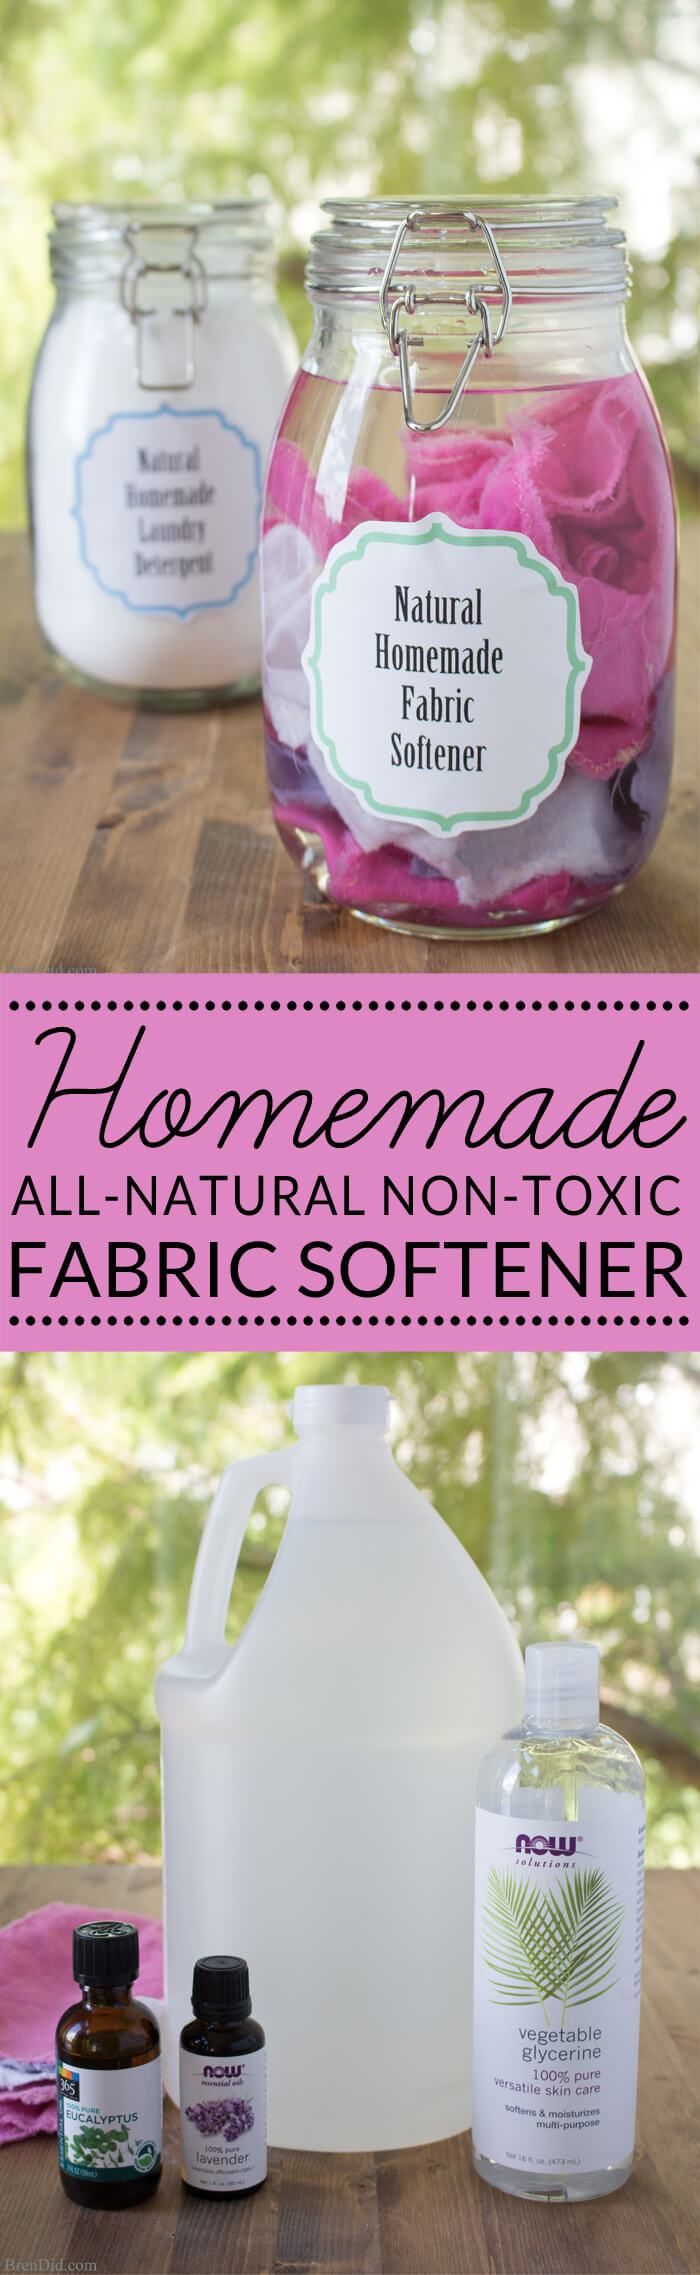 Natural homemade fabric softener leaves your clothes soft and static free…